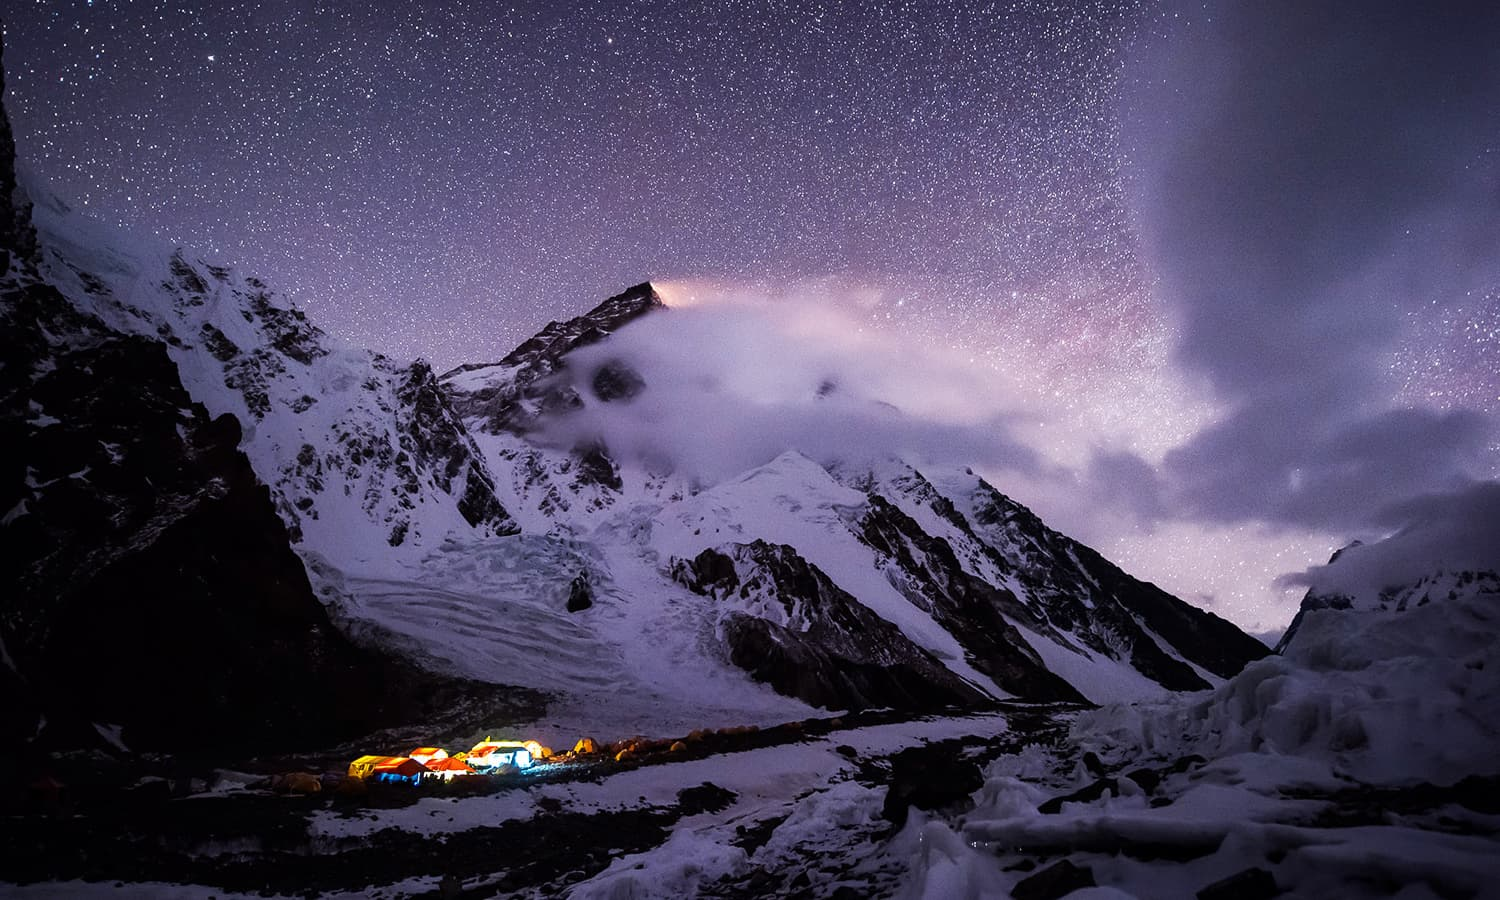 A shot of the starry night and the camps. — Photo by Petr Jan Juračka